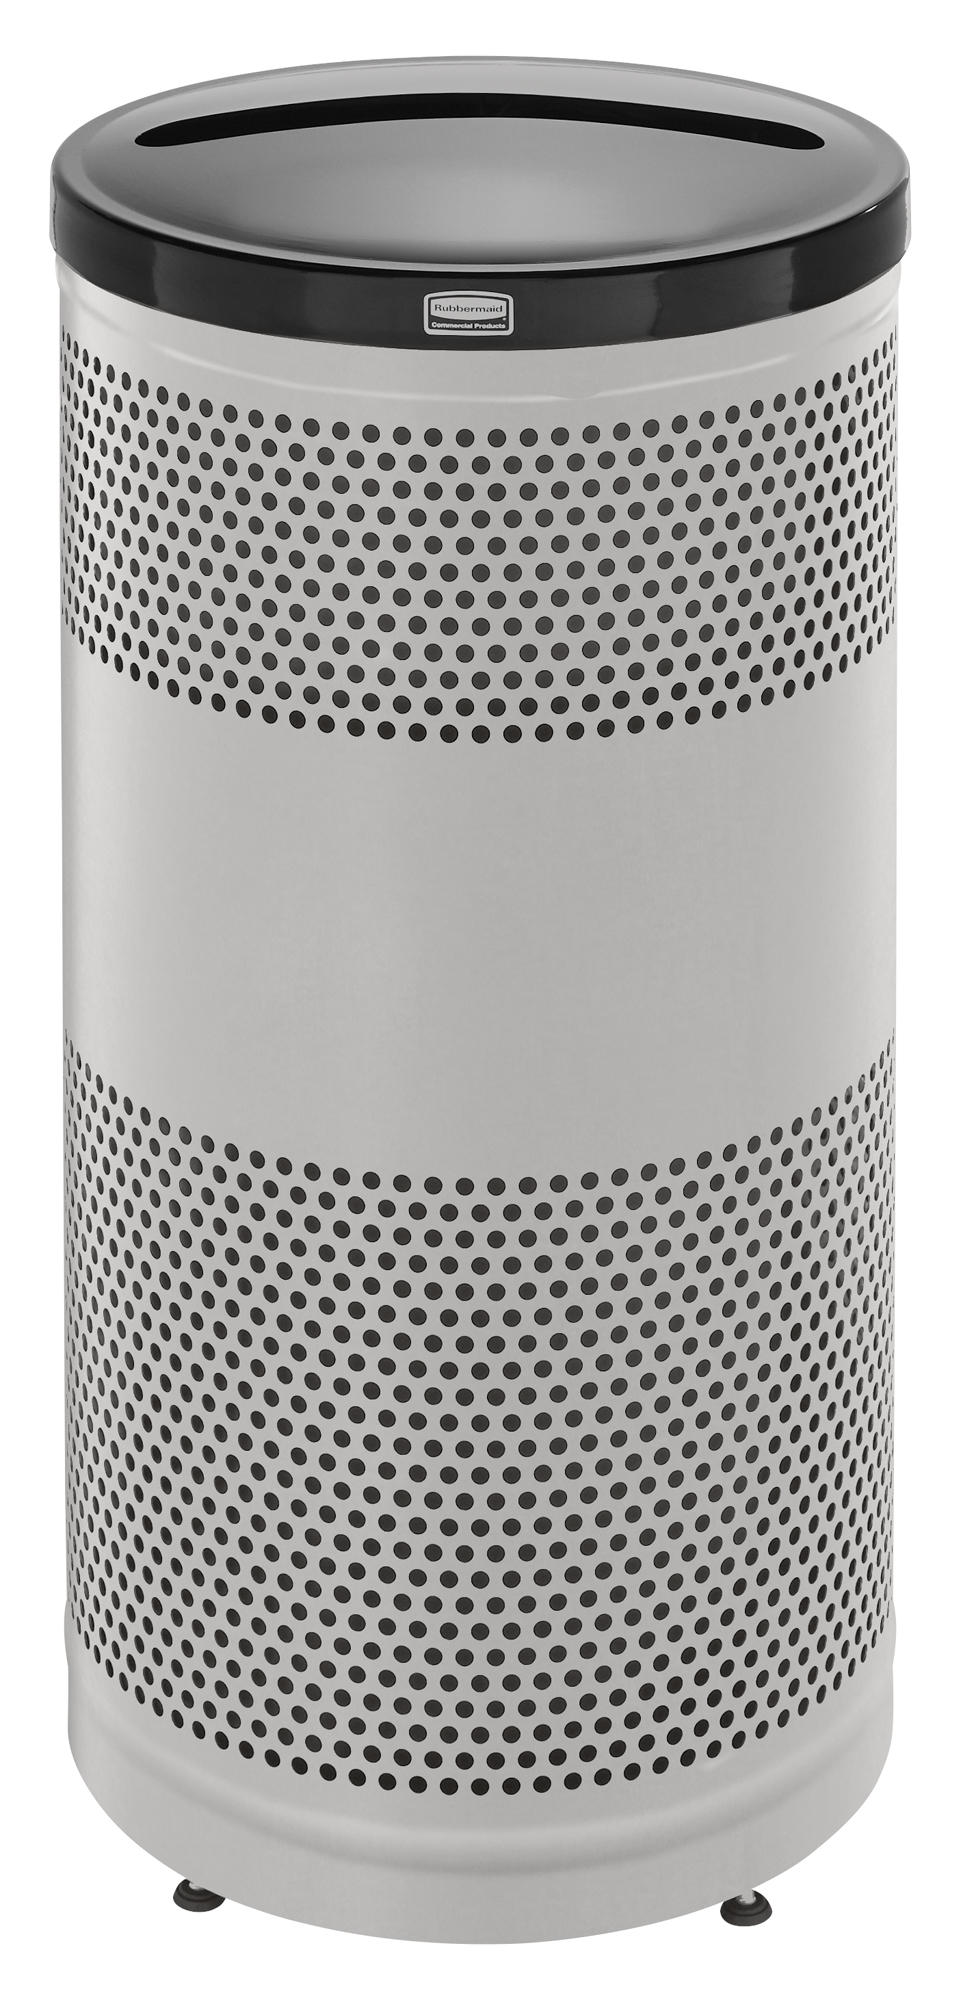 S3SSP  Classics Collection 25 Gallon Round Stainless Steel Recycling Receptacle with Newpaper/Paper Lid